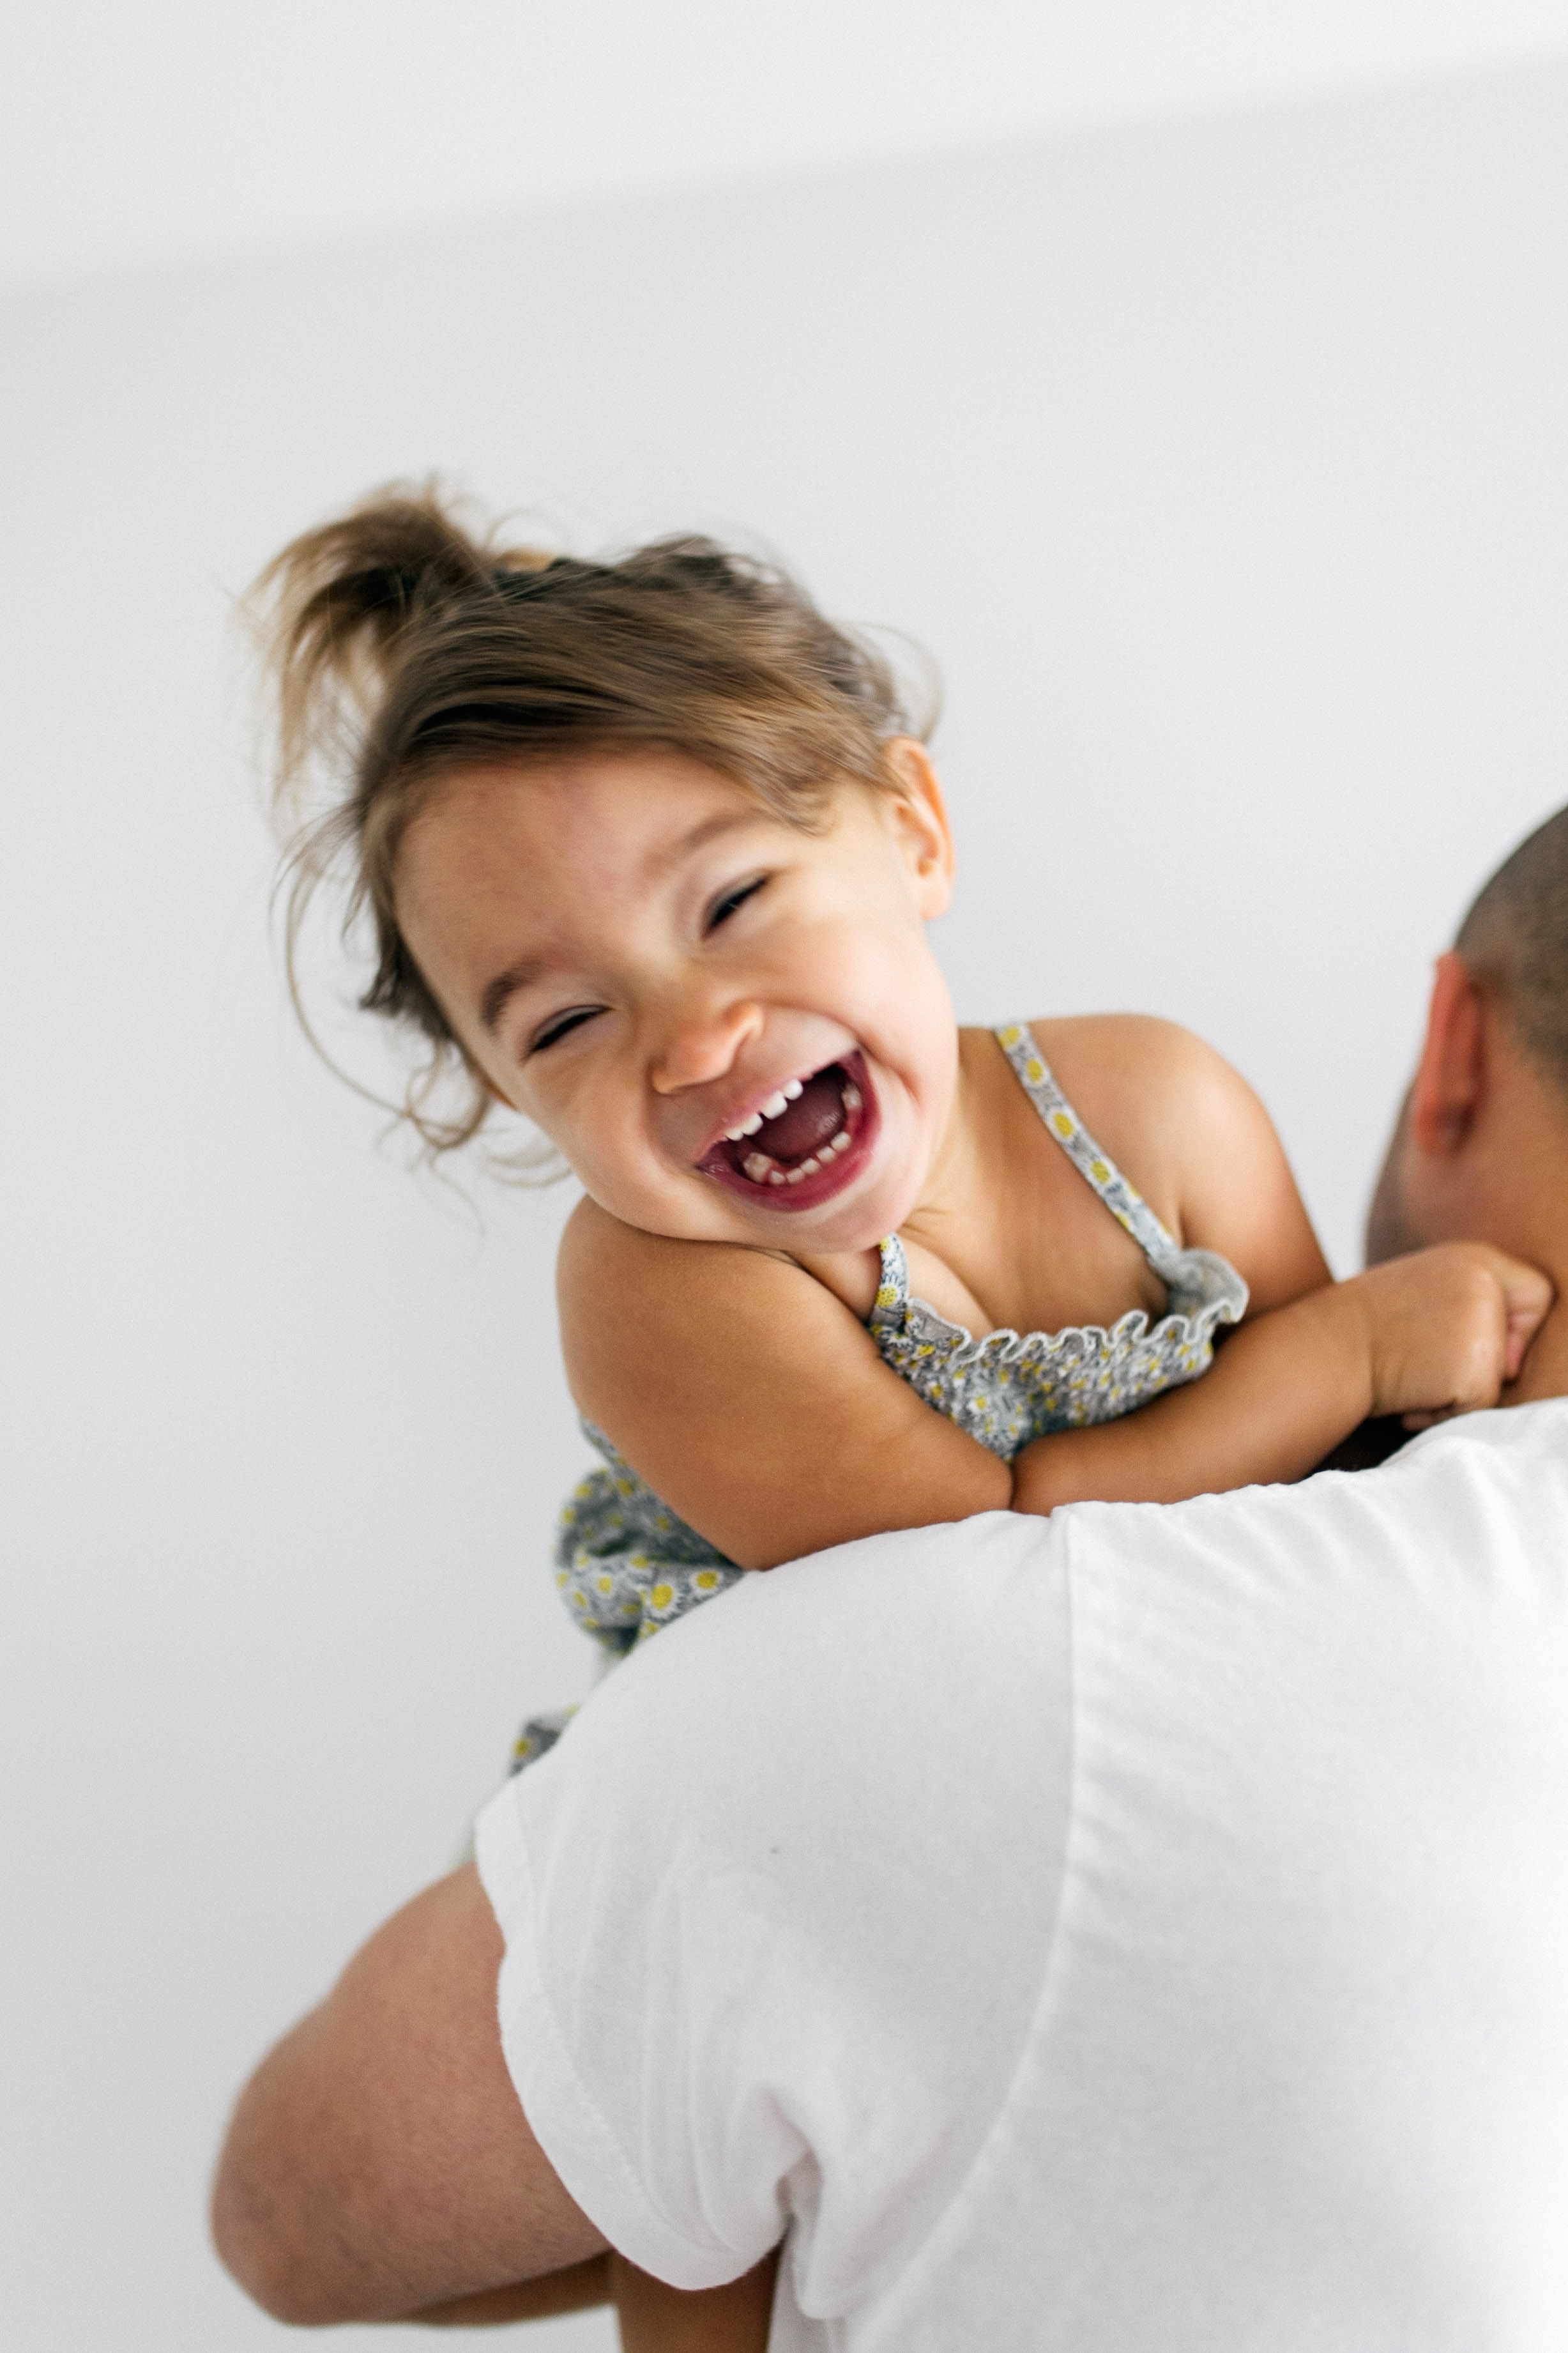 Newborn Family Session, Natural Light in Home, toddler in house lifestyle | Chelsea Macor Photography Seattle WA-14.jpg